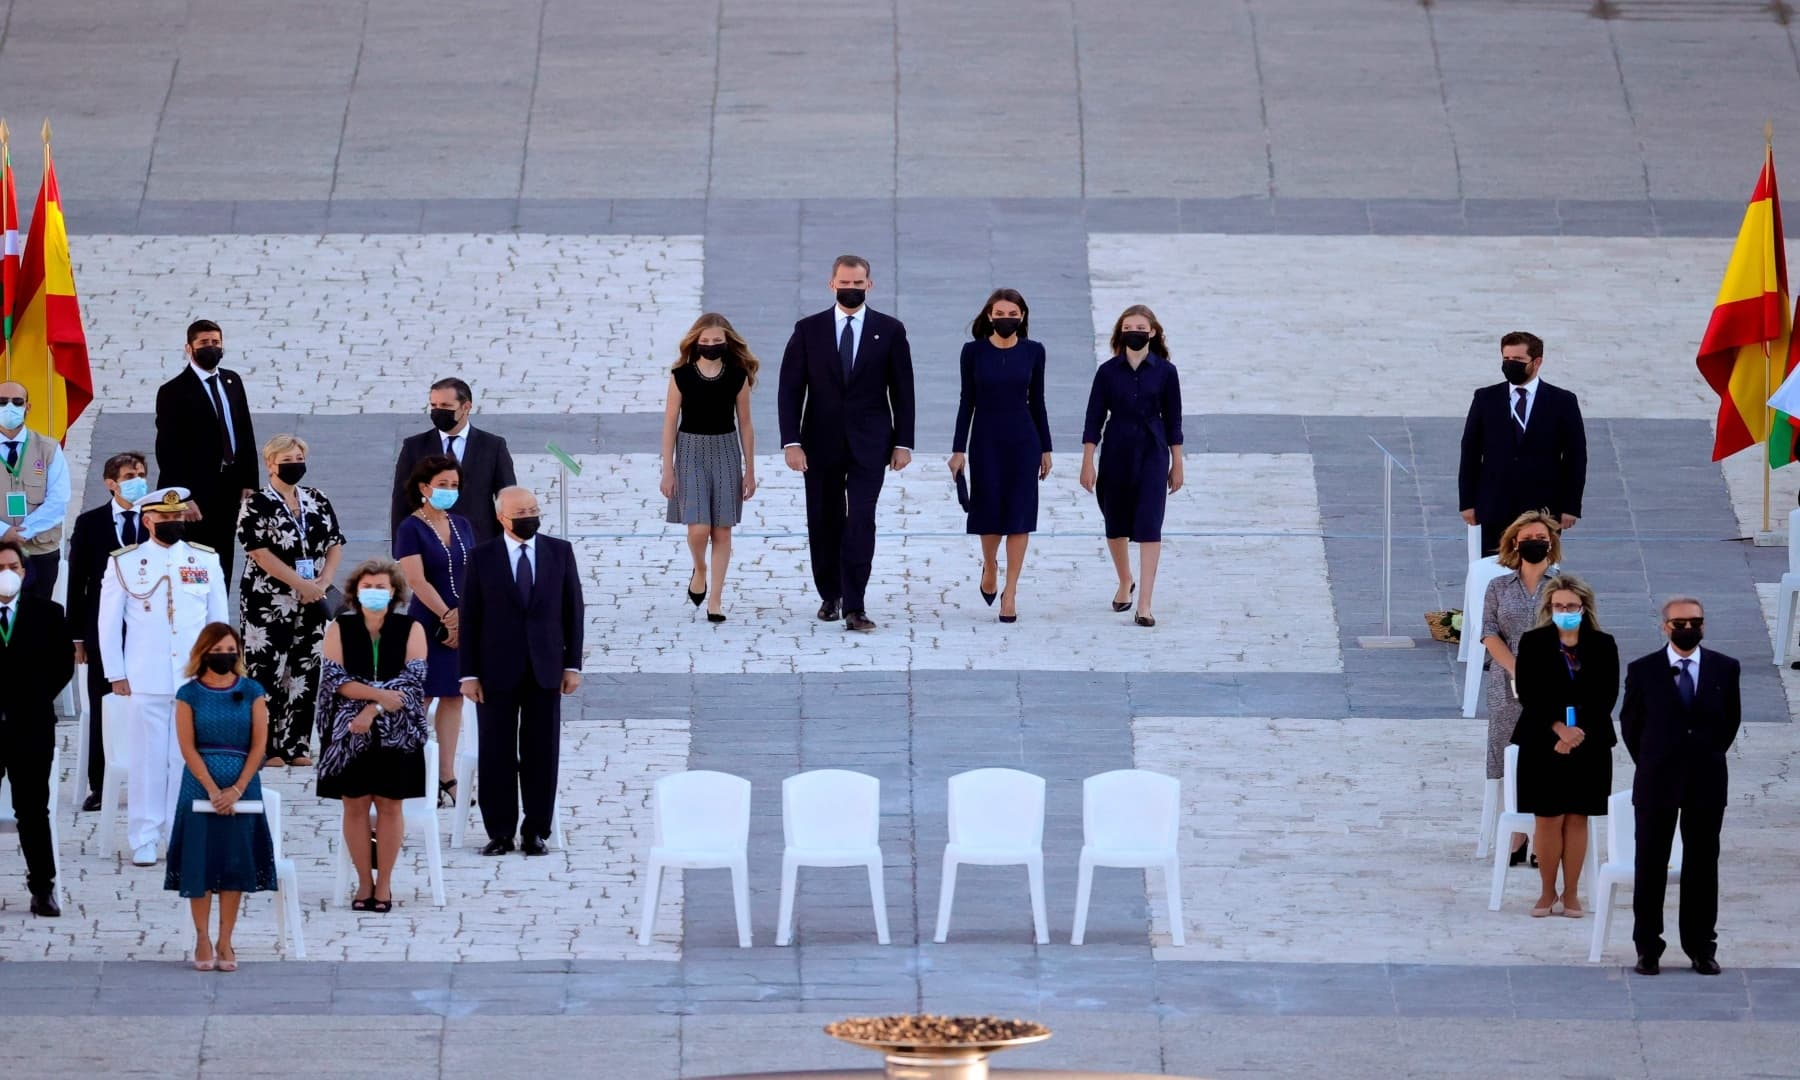 Spanish royal family members (L to R) Crown Princess Leonor, King Felipe VI, Queen Letizia and Princess Sofia arrive to attend a state ceremony to honour the 28,400 victims of the coronavirus crisis as well as those public servants who have been fighting on the front line against the pandemic in Spain. — AFP